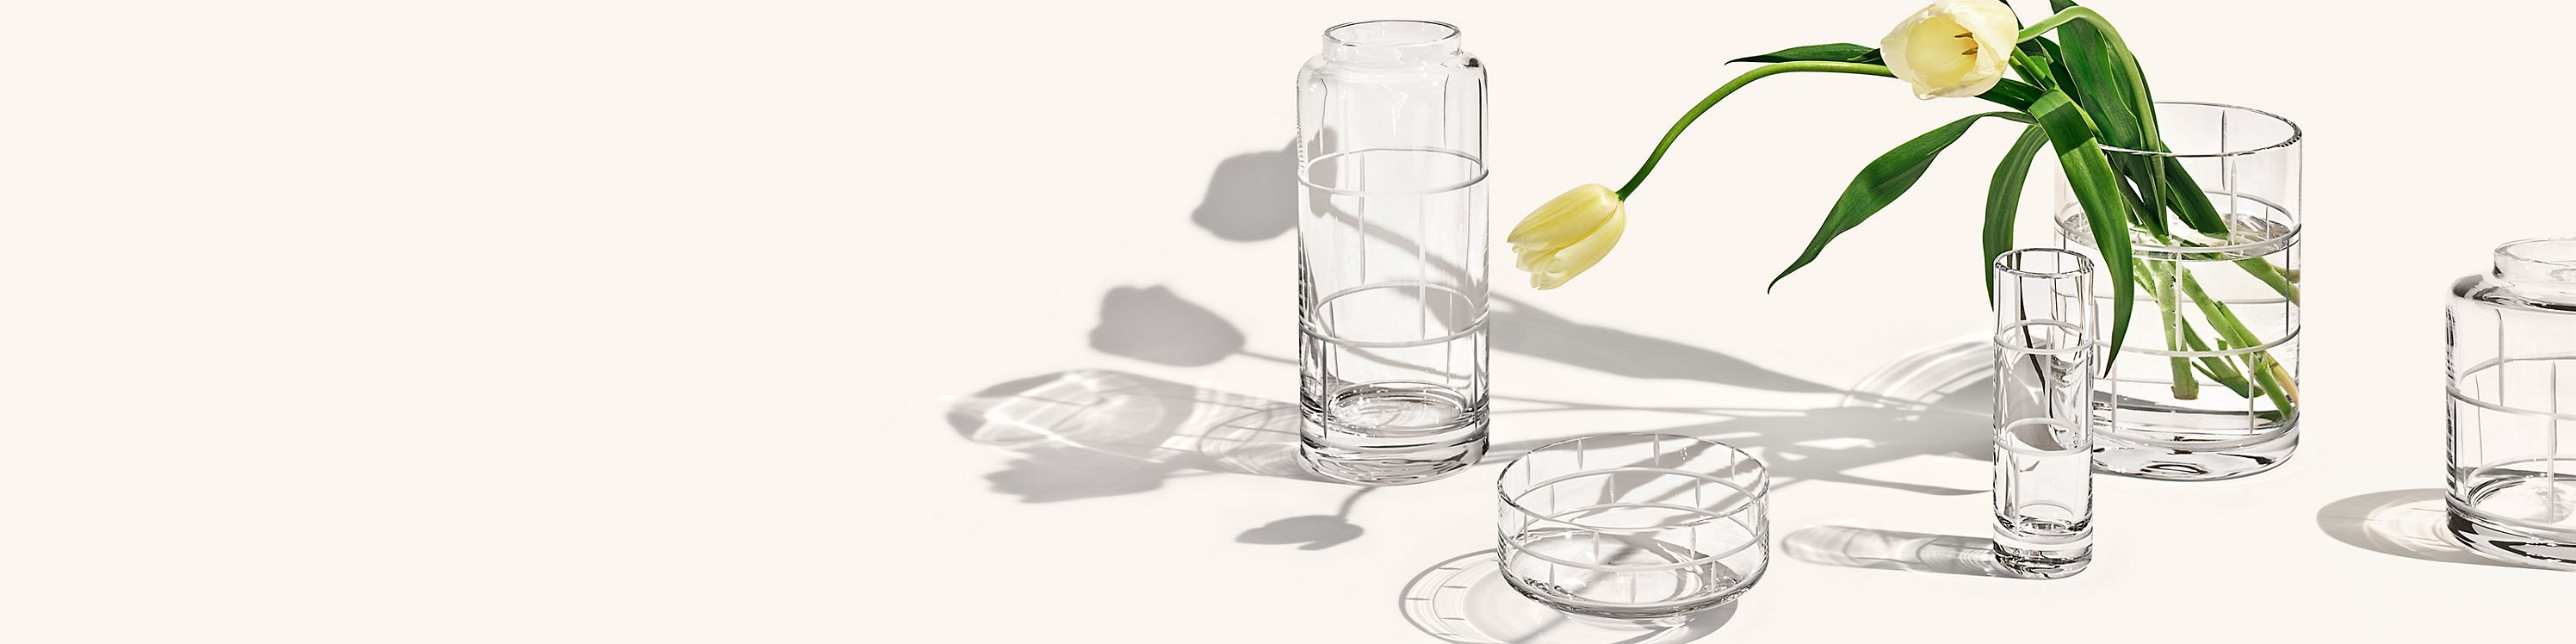 Tiffany & Co. Designs for Staying at Home